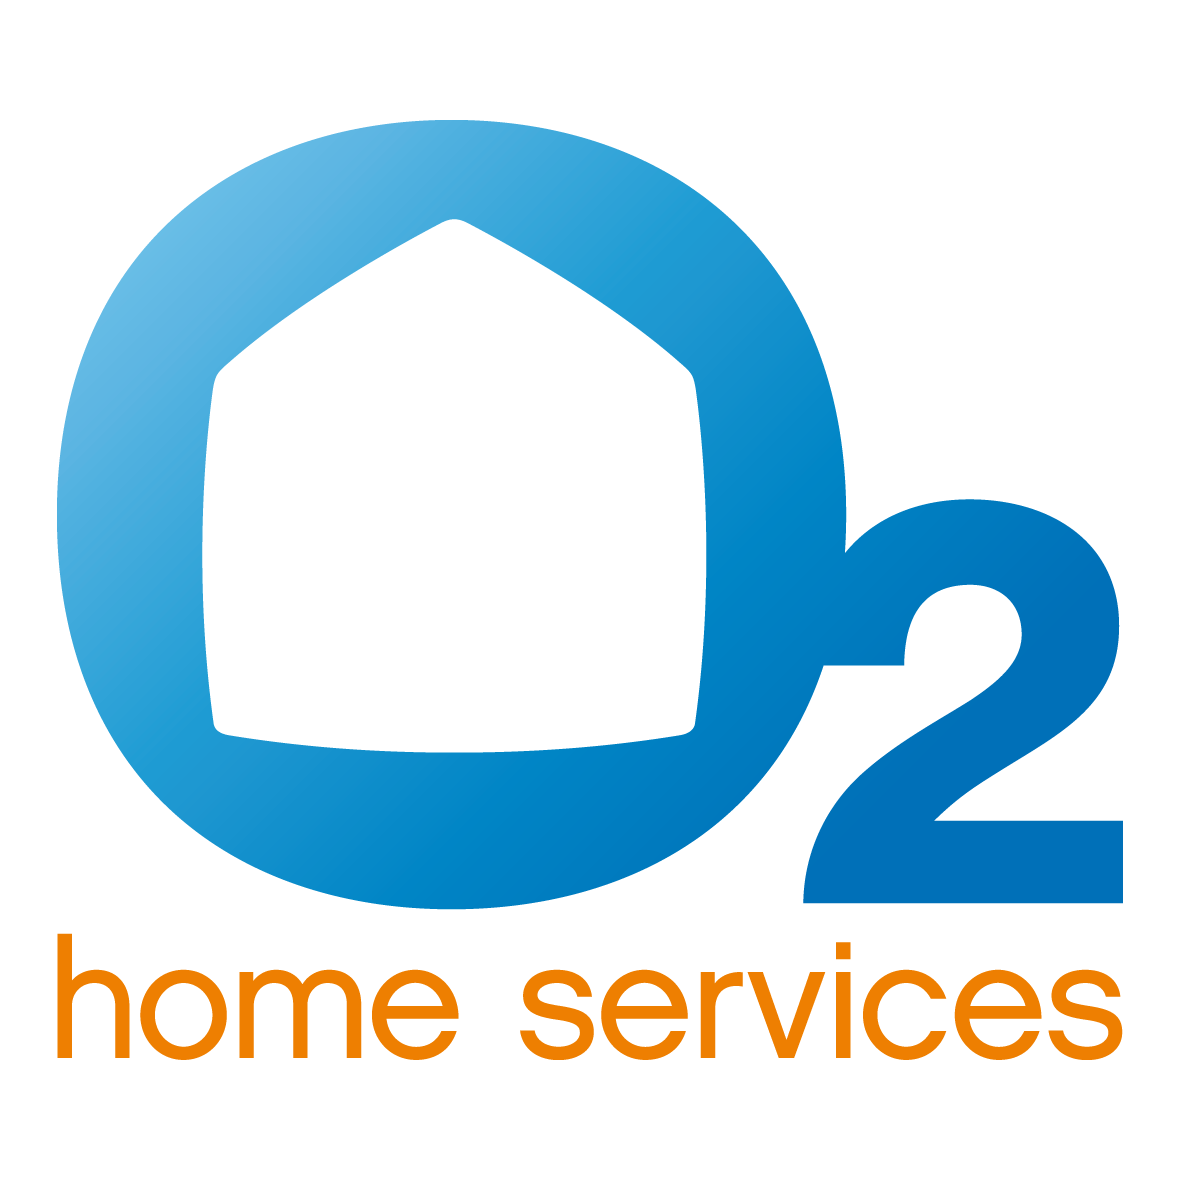 O2 home services logo